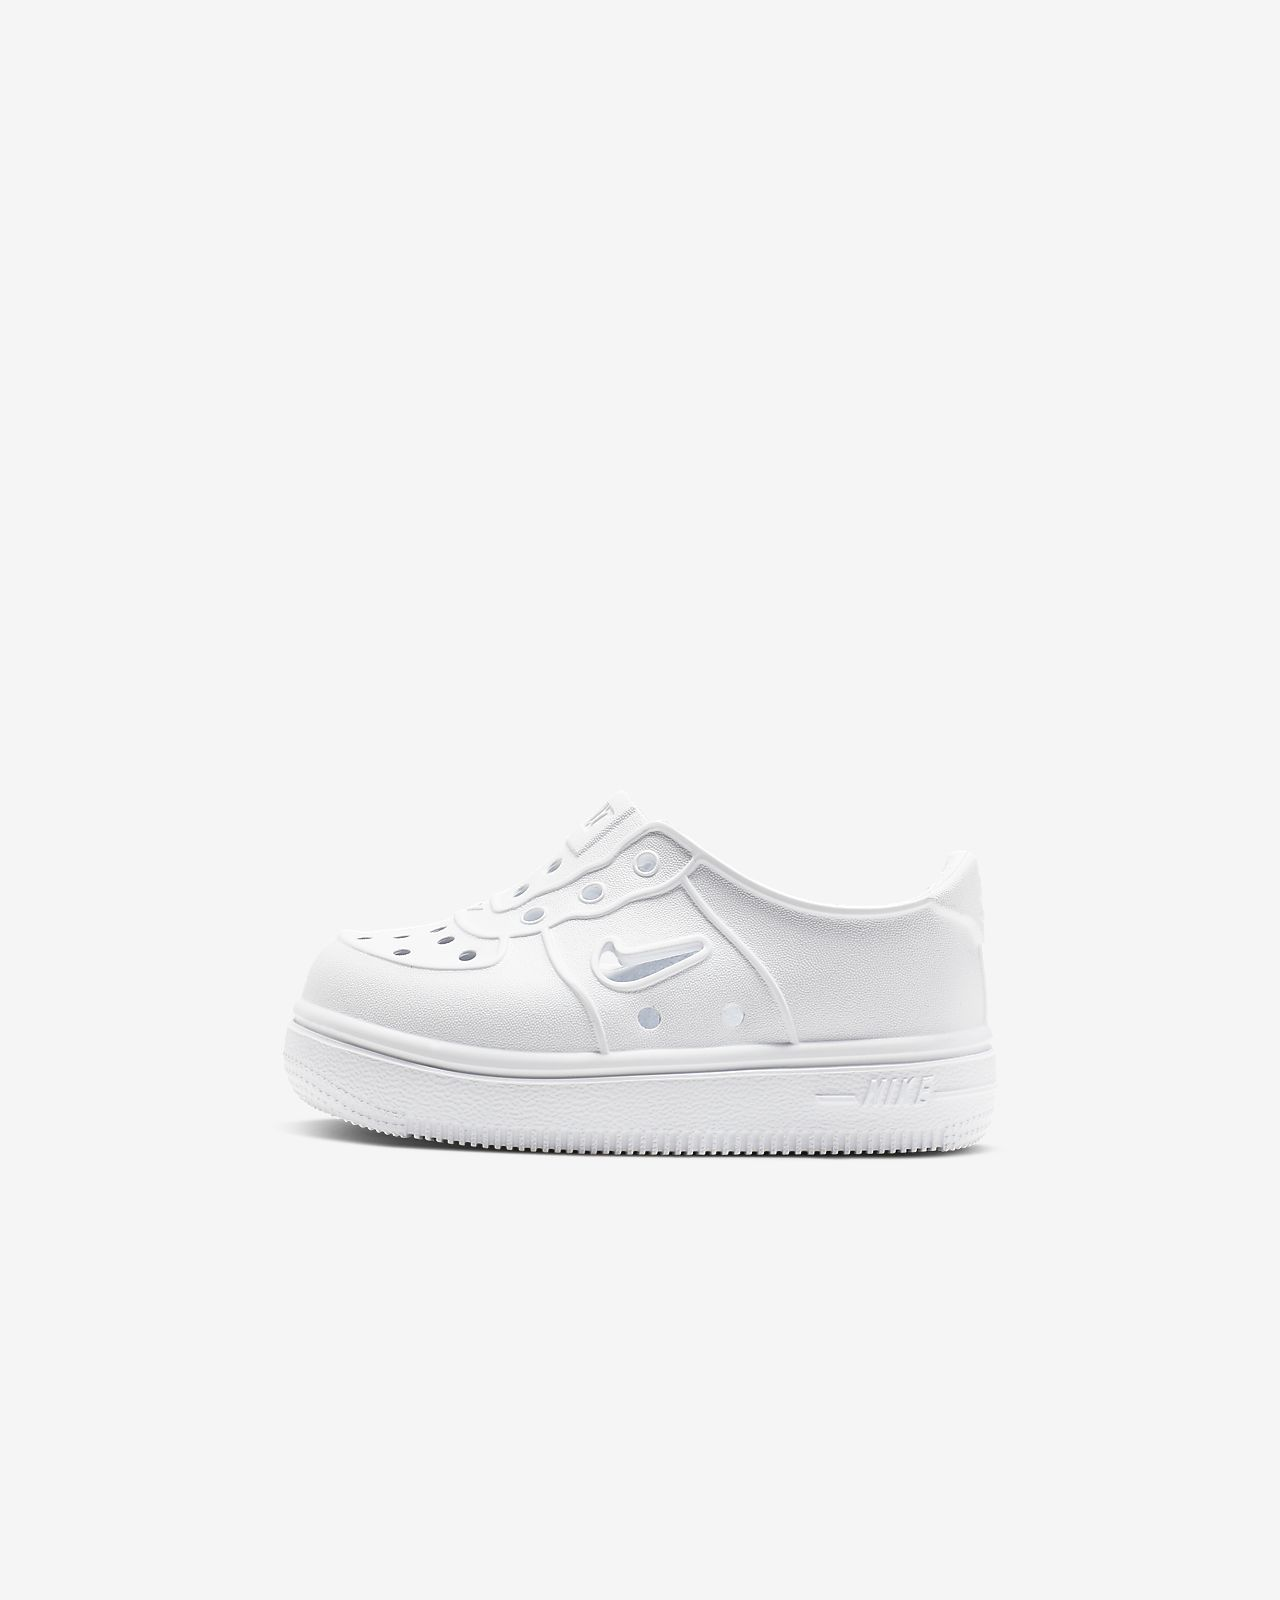 Nike Foam Force 1 Sabatilles - Nadó i infant